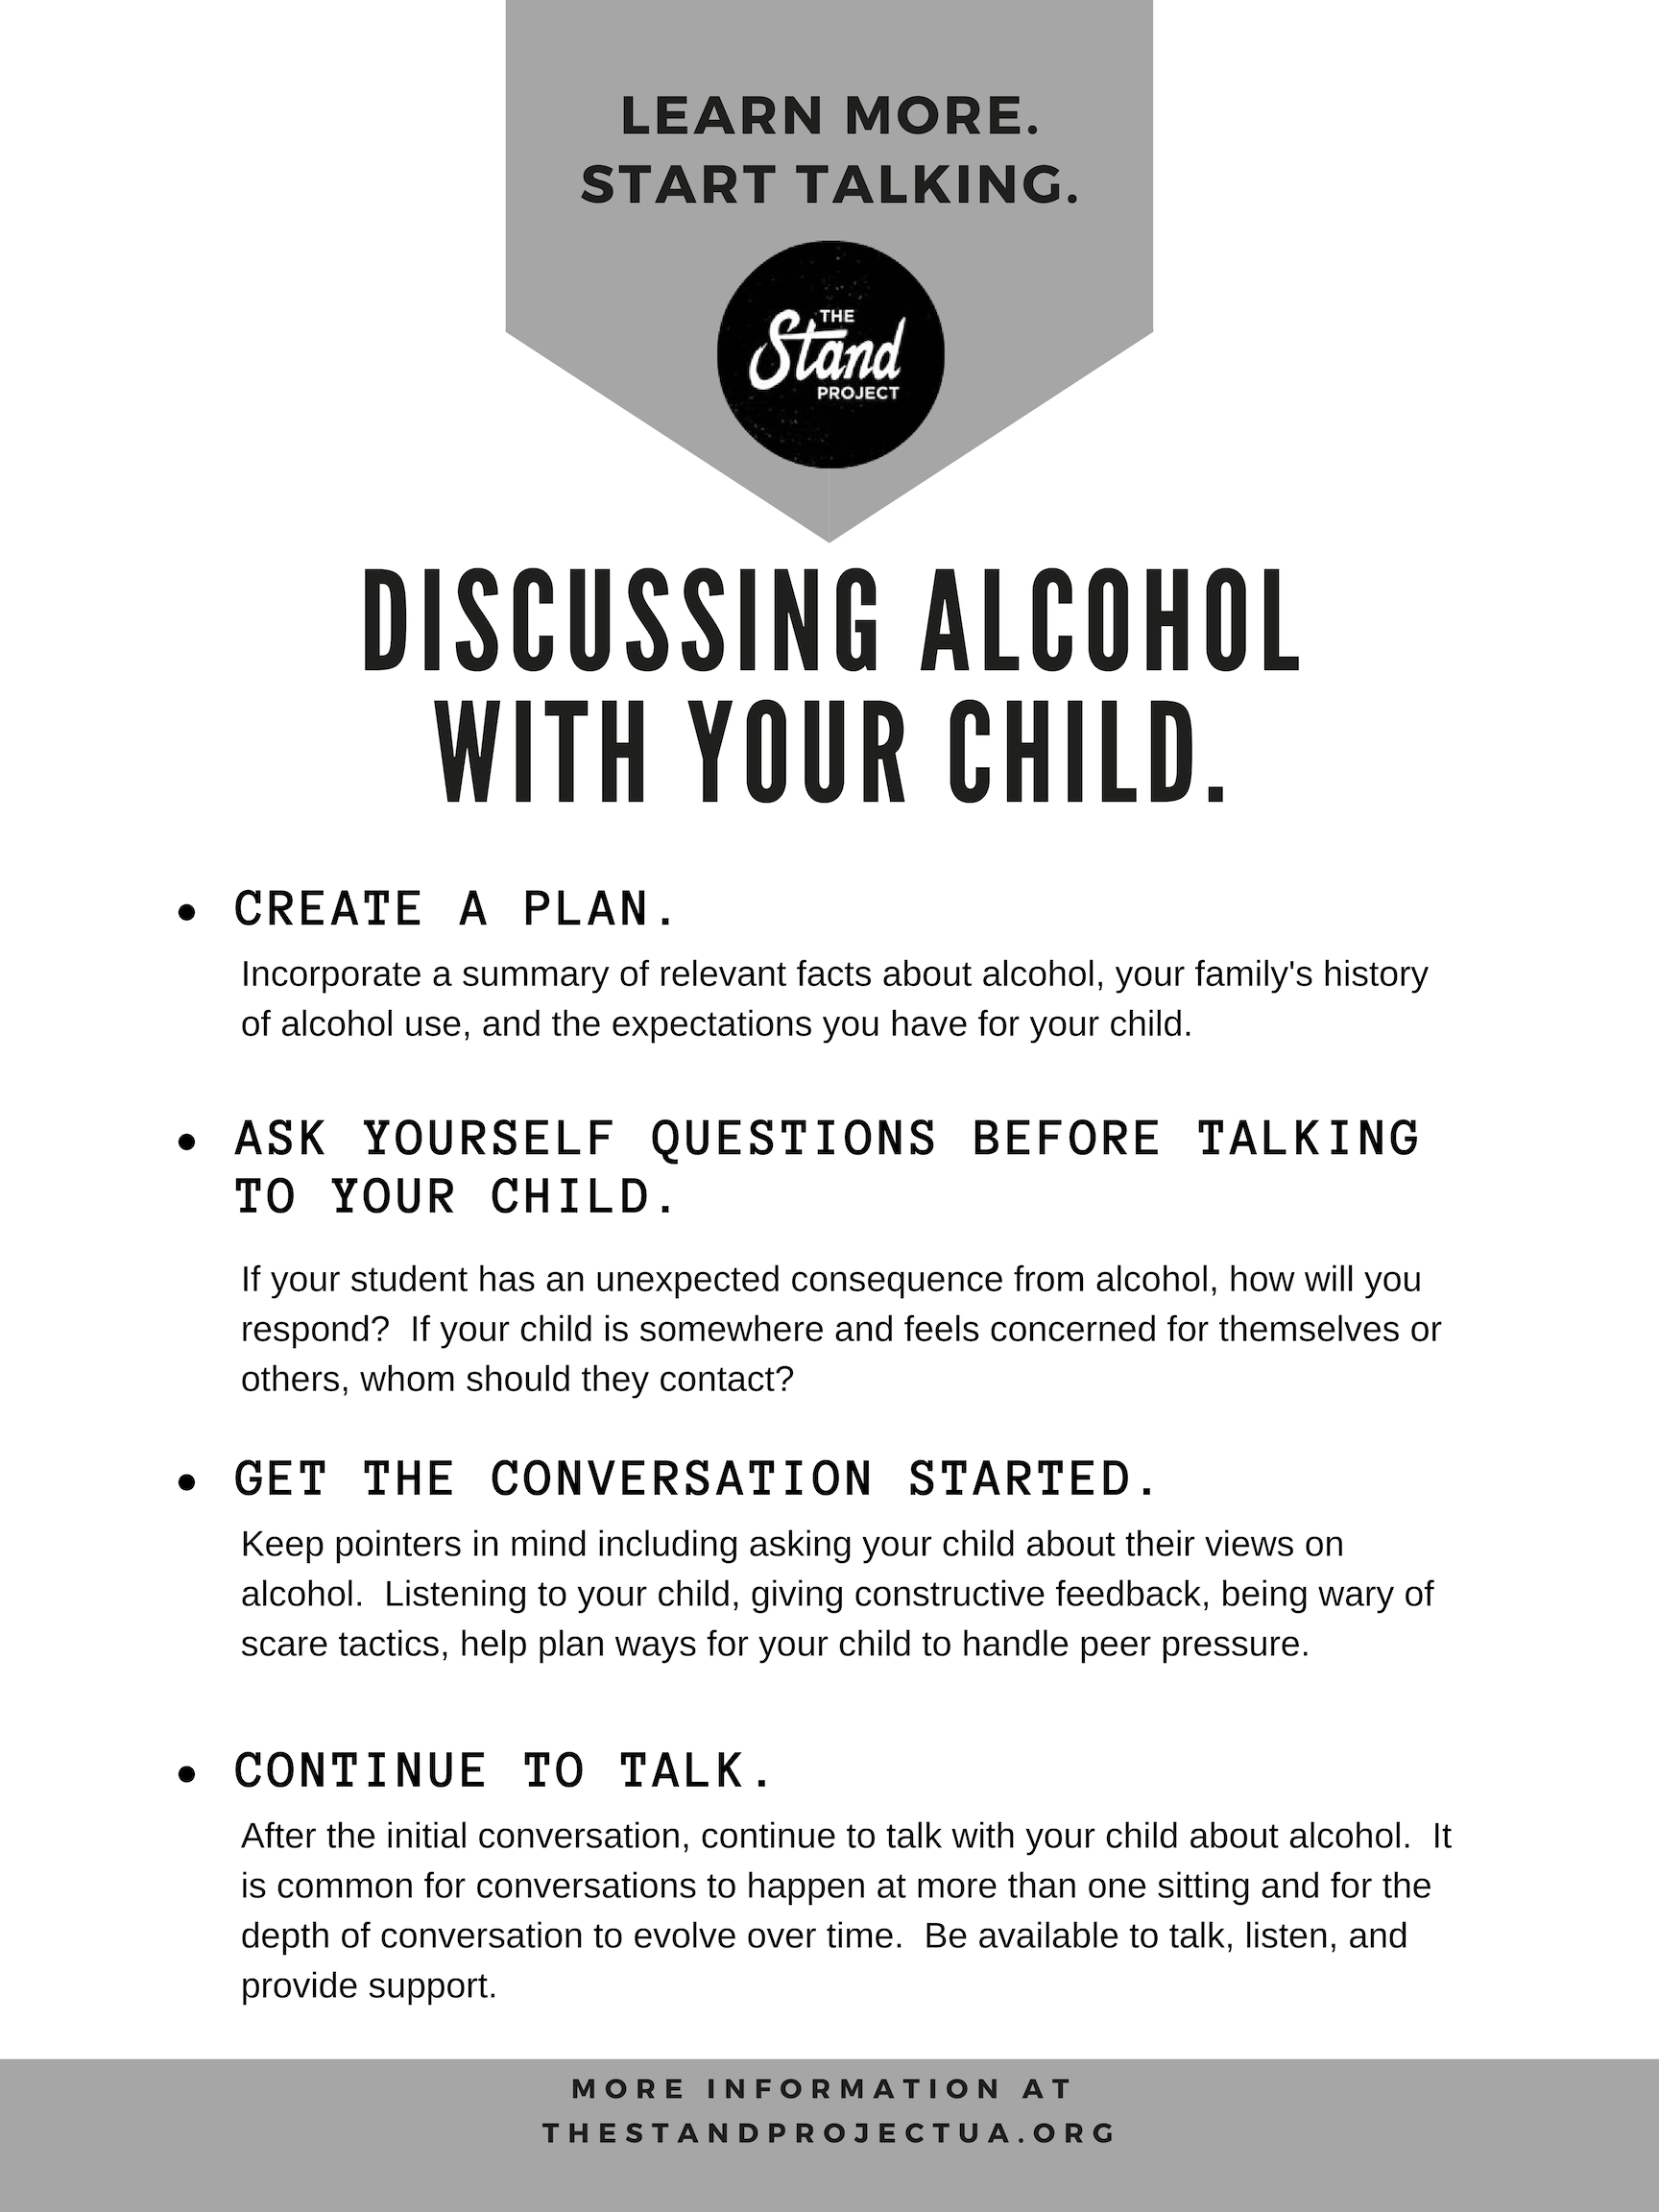 Tips for parents on discussing alcohol with their children.